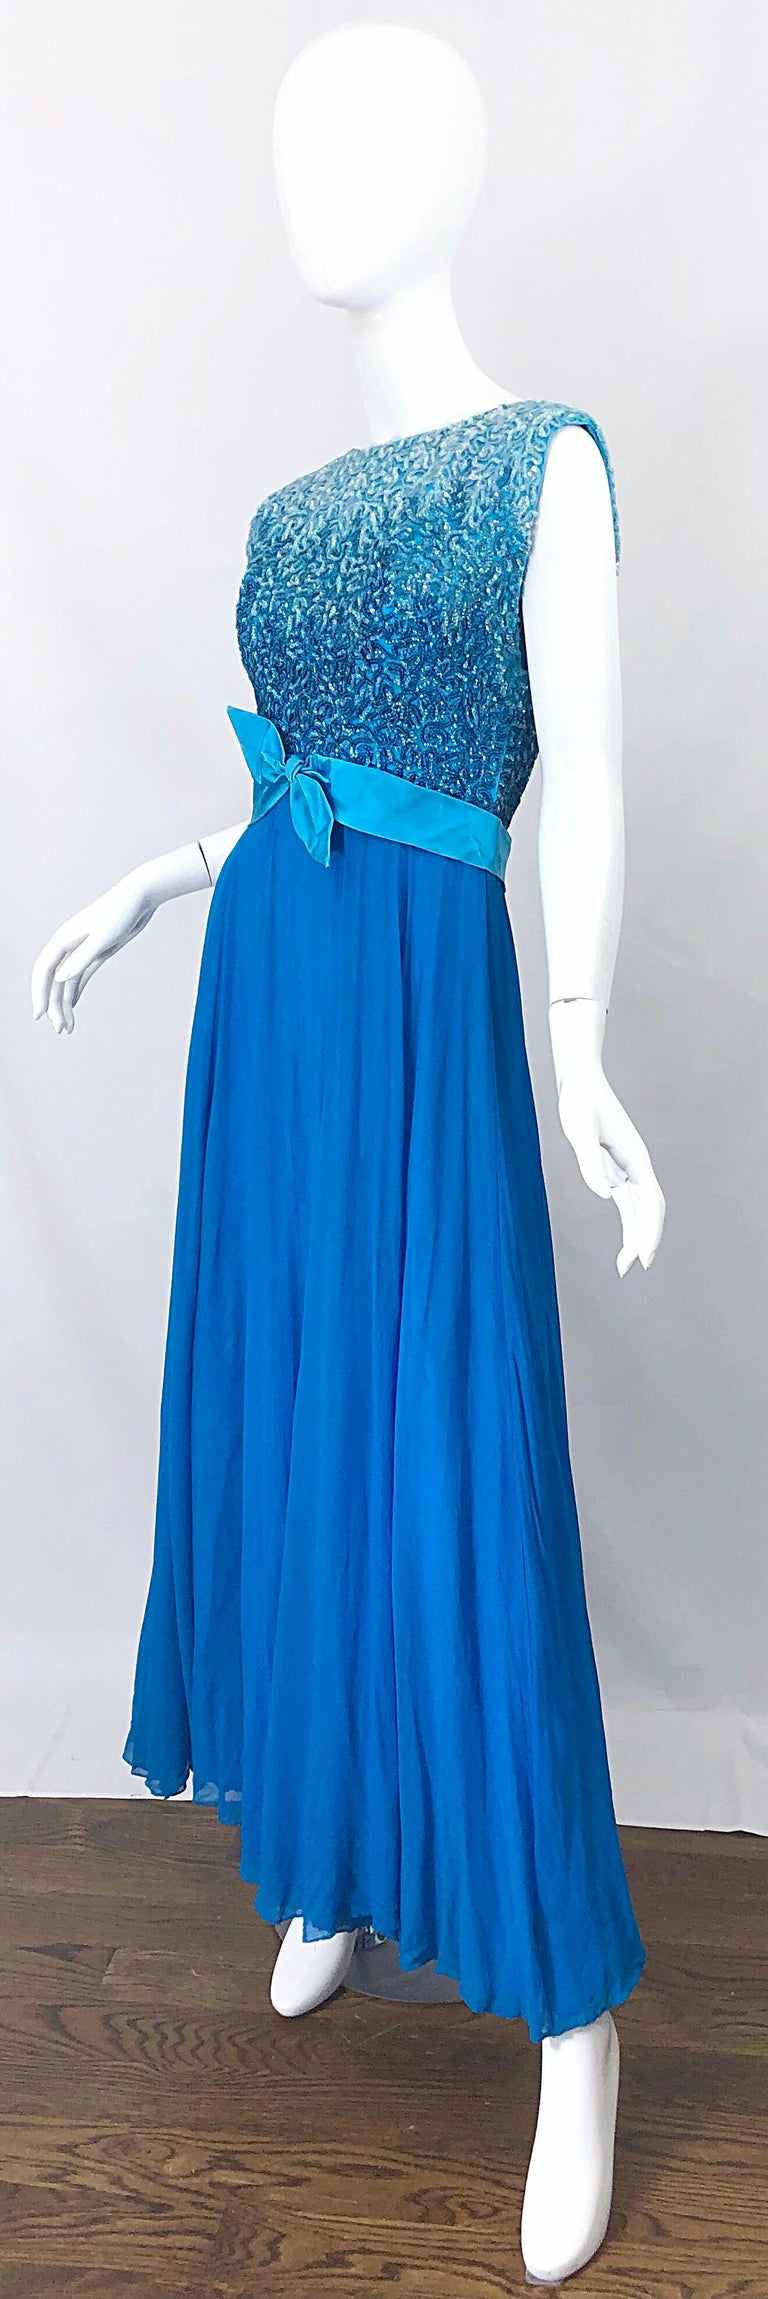 1950s Emma Domb Turquoise Blue Ombre Sequined Silk Chiffon Vintage 50s Gown For Sale 1